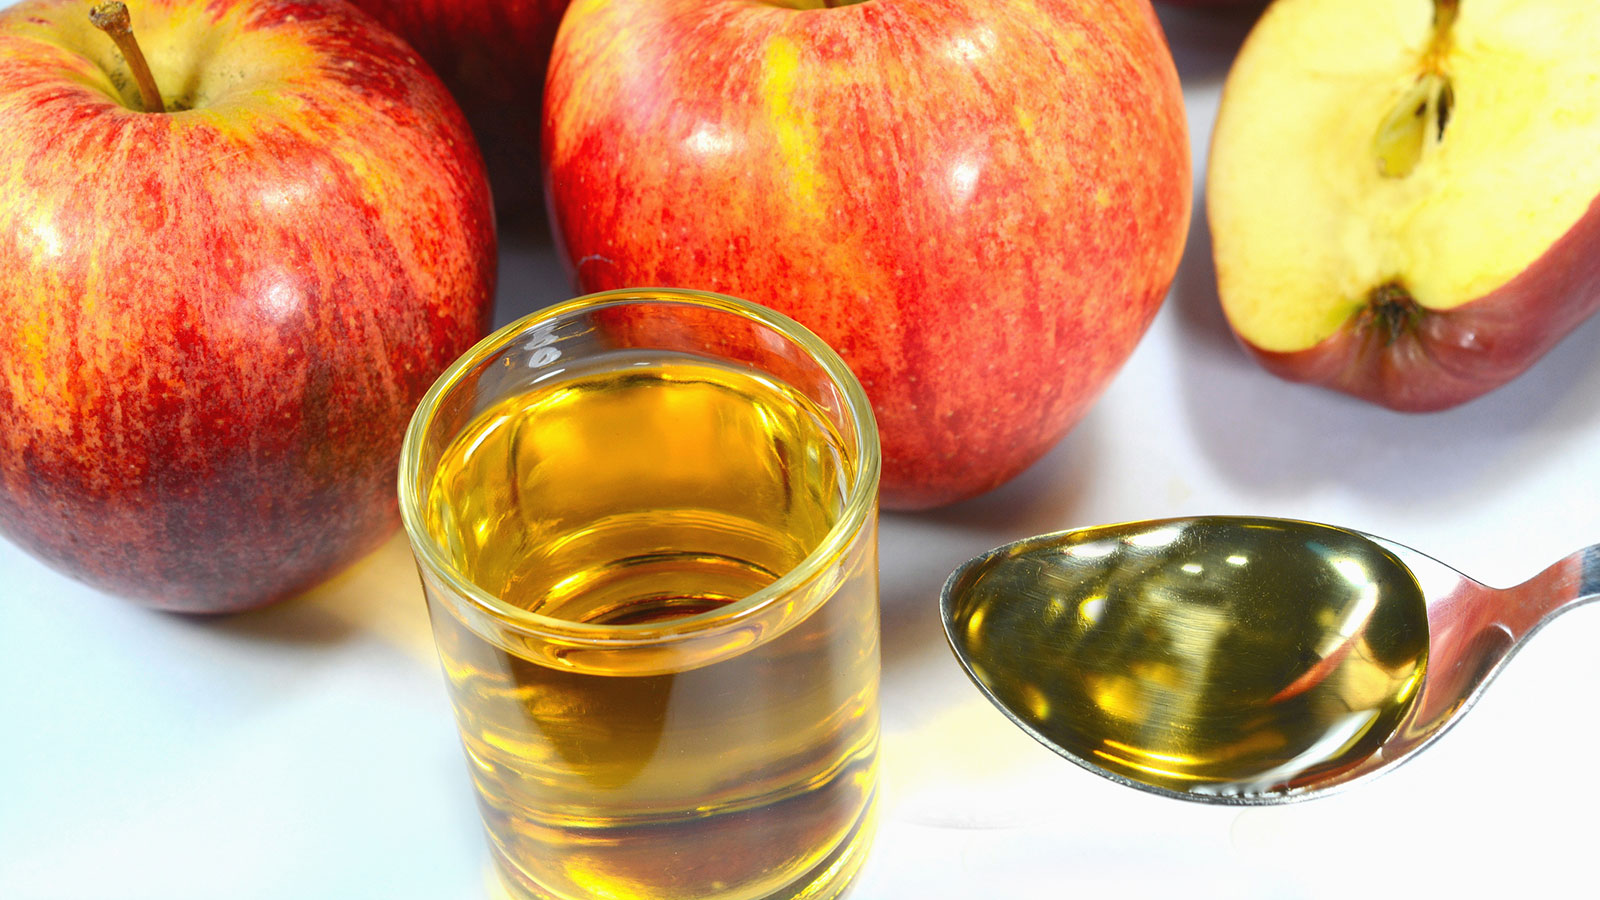 Is Apple Cider Vinegar the 'Secret' to Weight Loss?